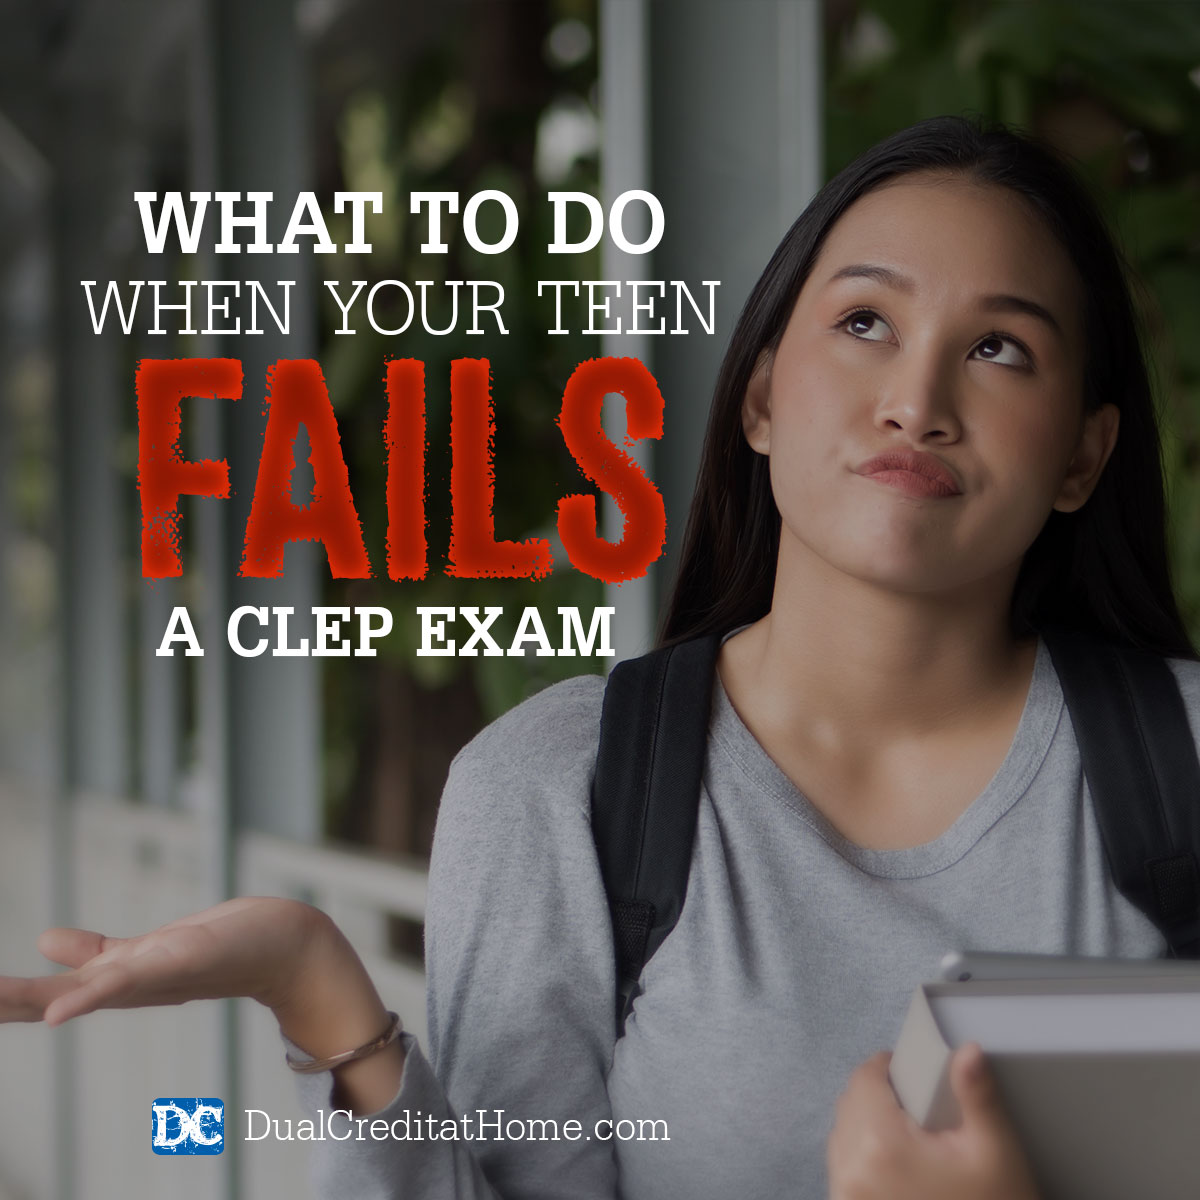 What To Do When Your Teen Fails a CLEP Exam